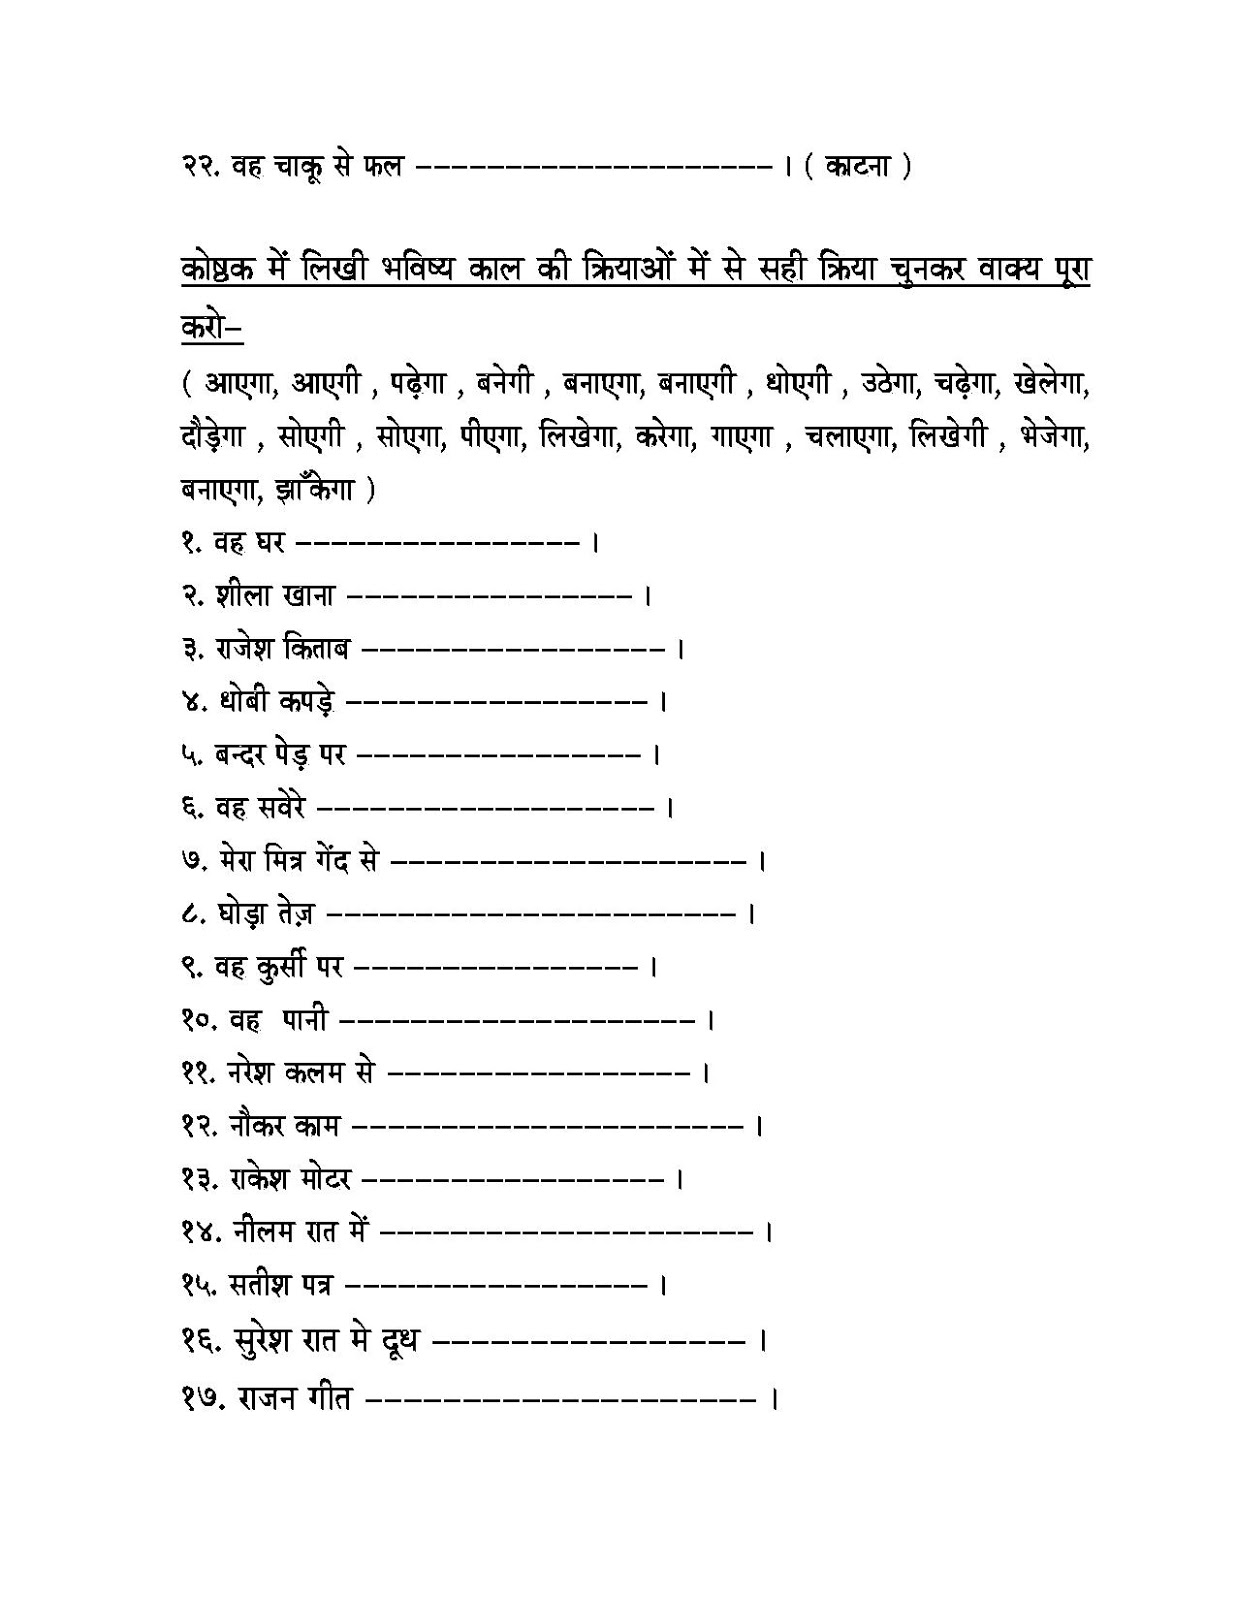 Worksheet For Class 3 In English